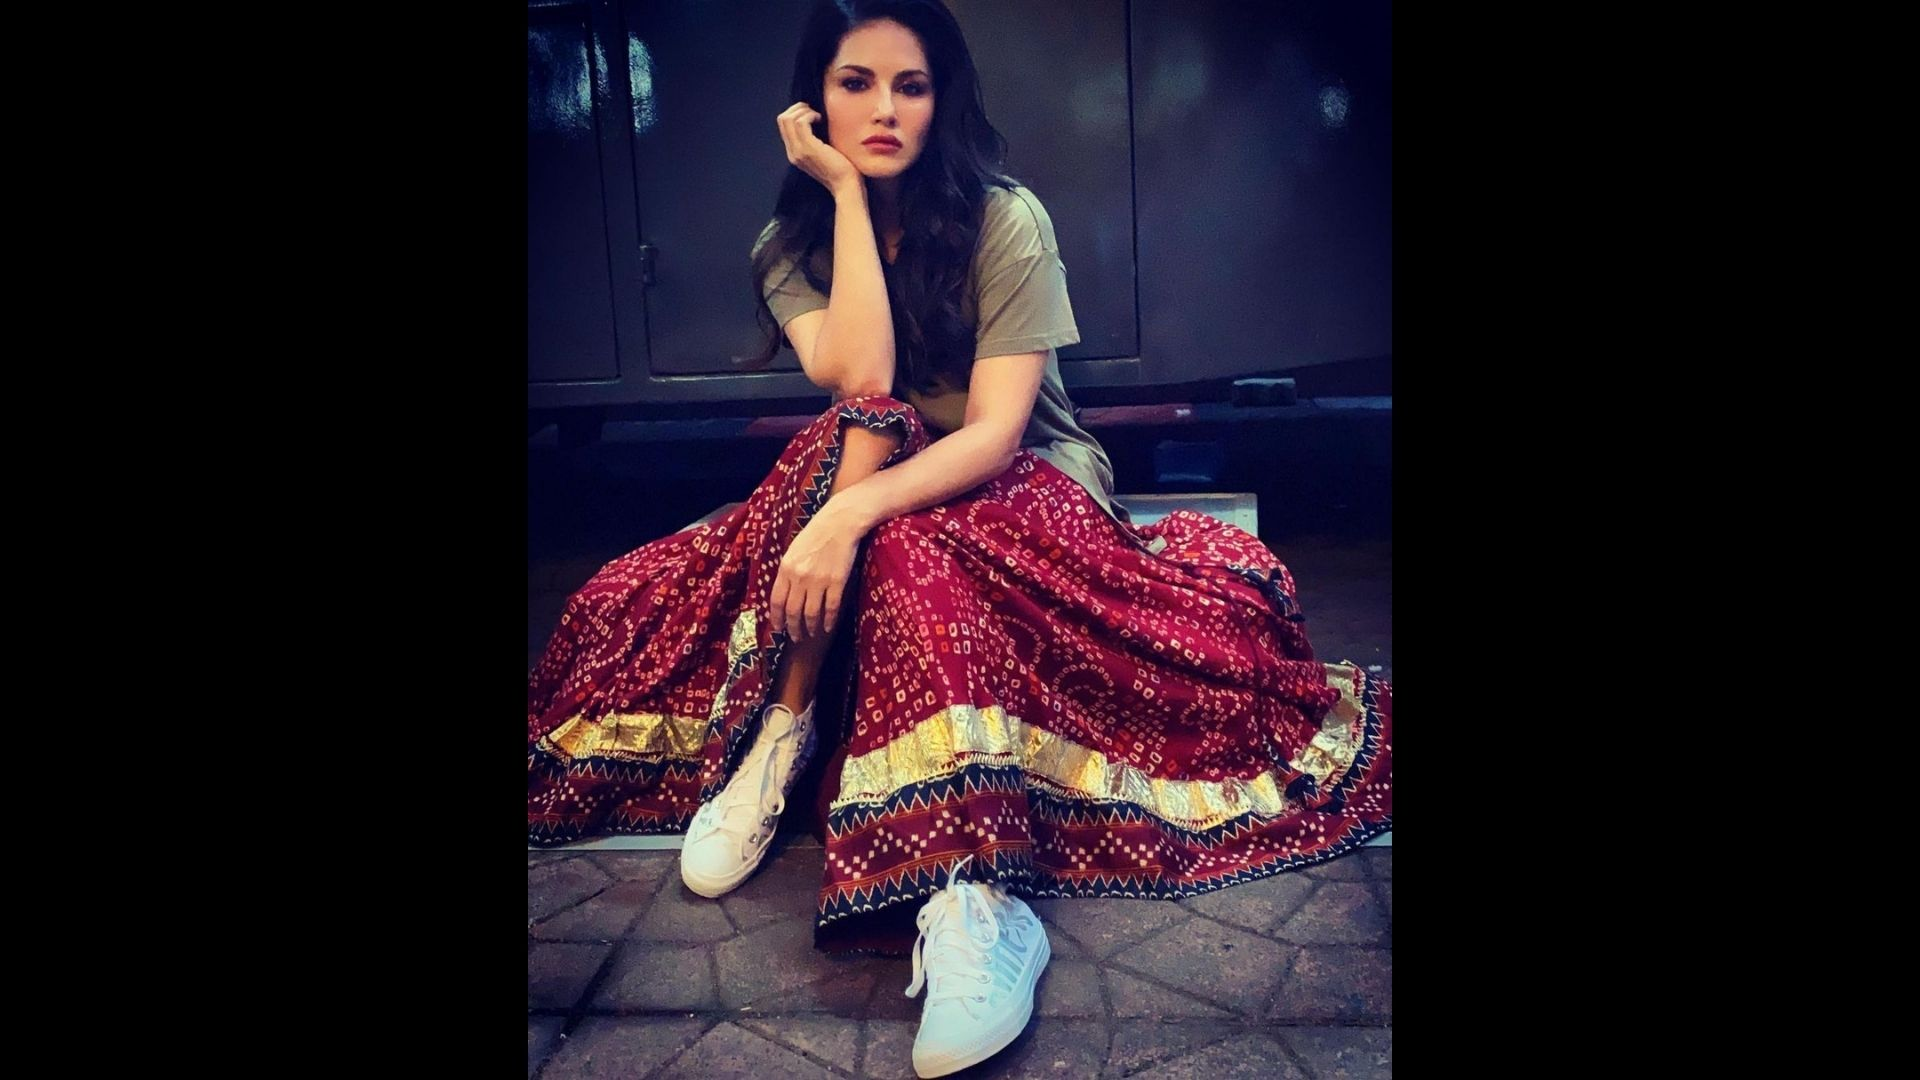 Sunny Leone's Latest IG Post Is A Perfect Blend Of Desi Meets Western- SEE PICS